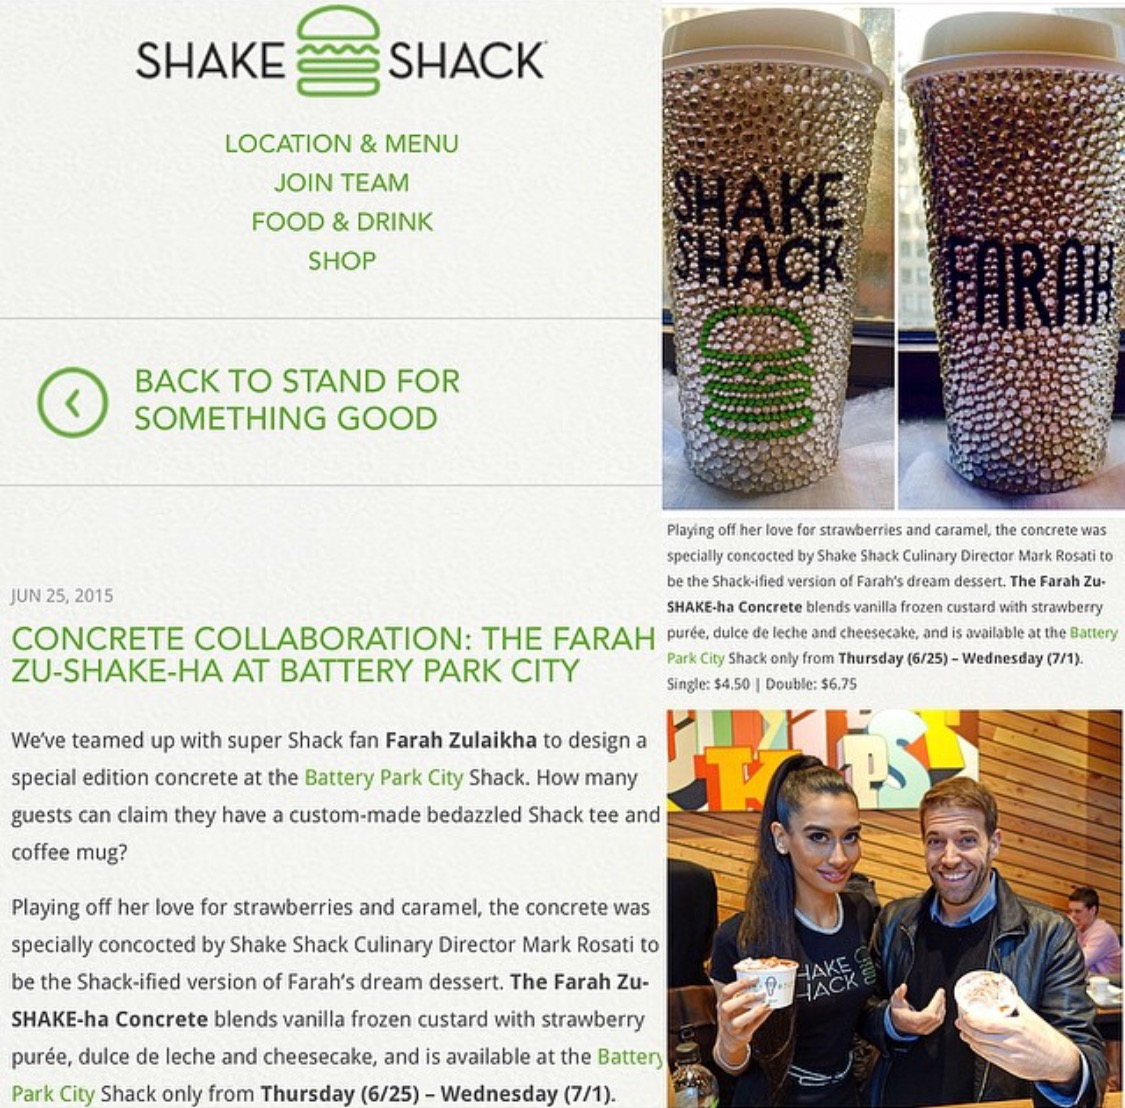 On the Shake Shack Official Website! Exclusively on www.shakeshack.com the Farah Zu-SHAKE-Ha Concrete!